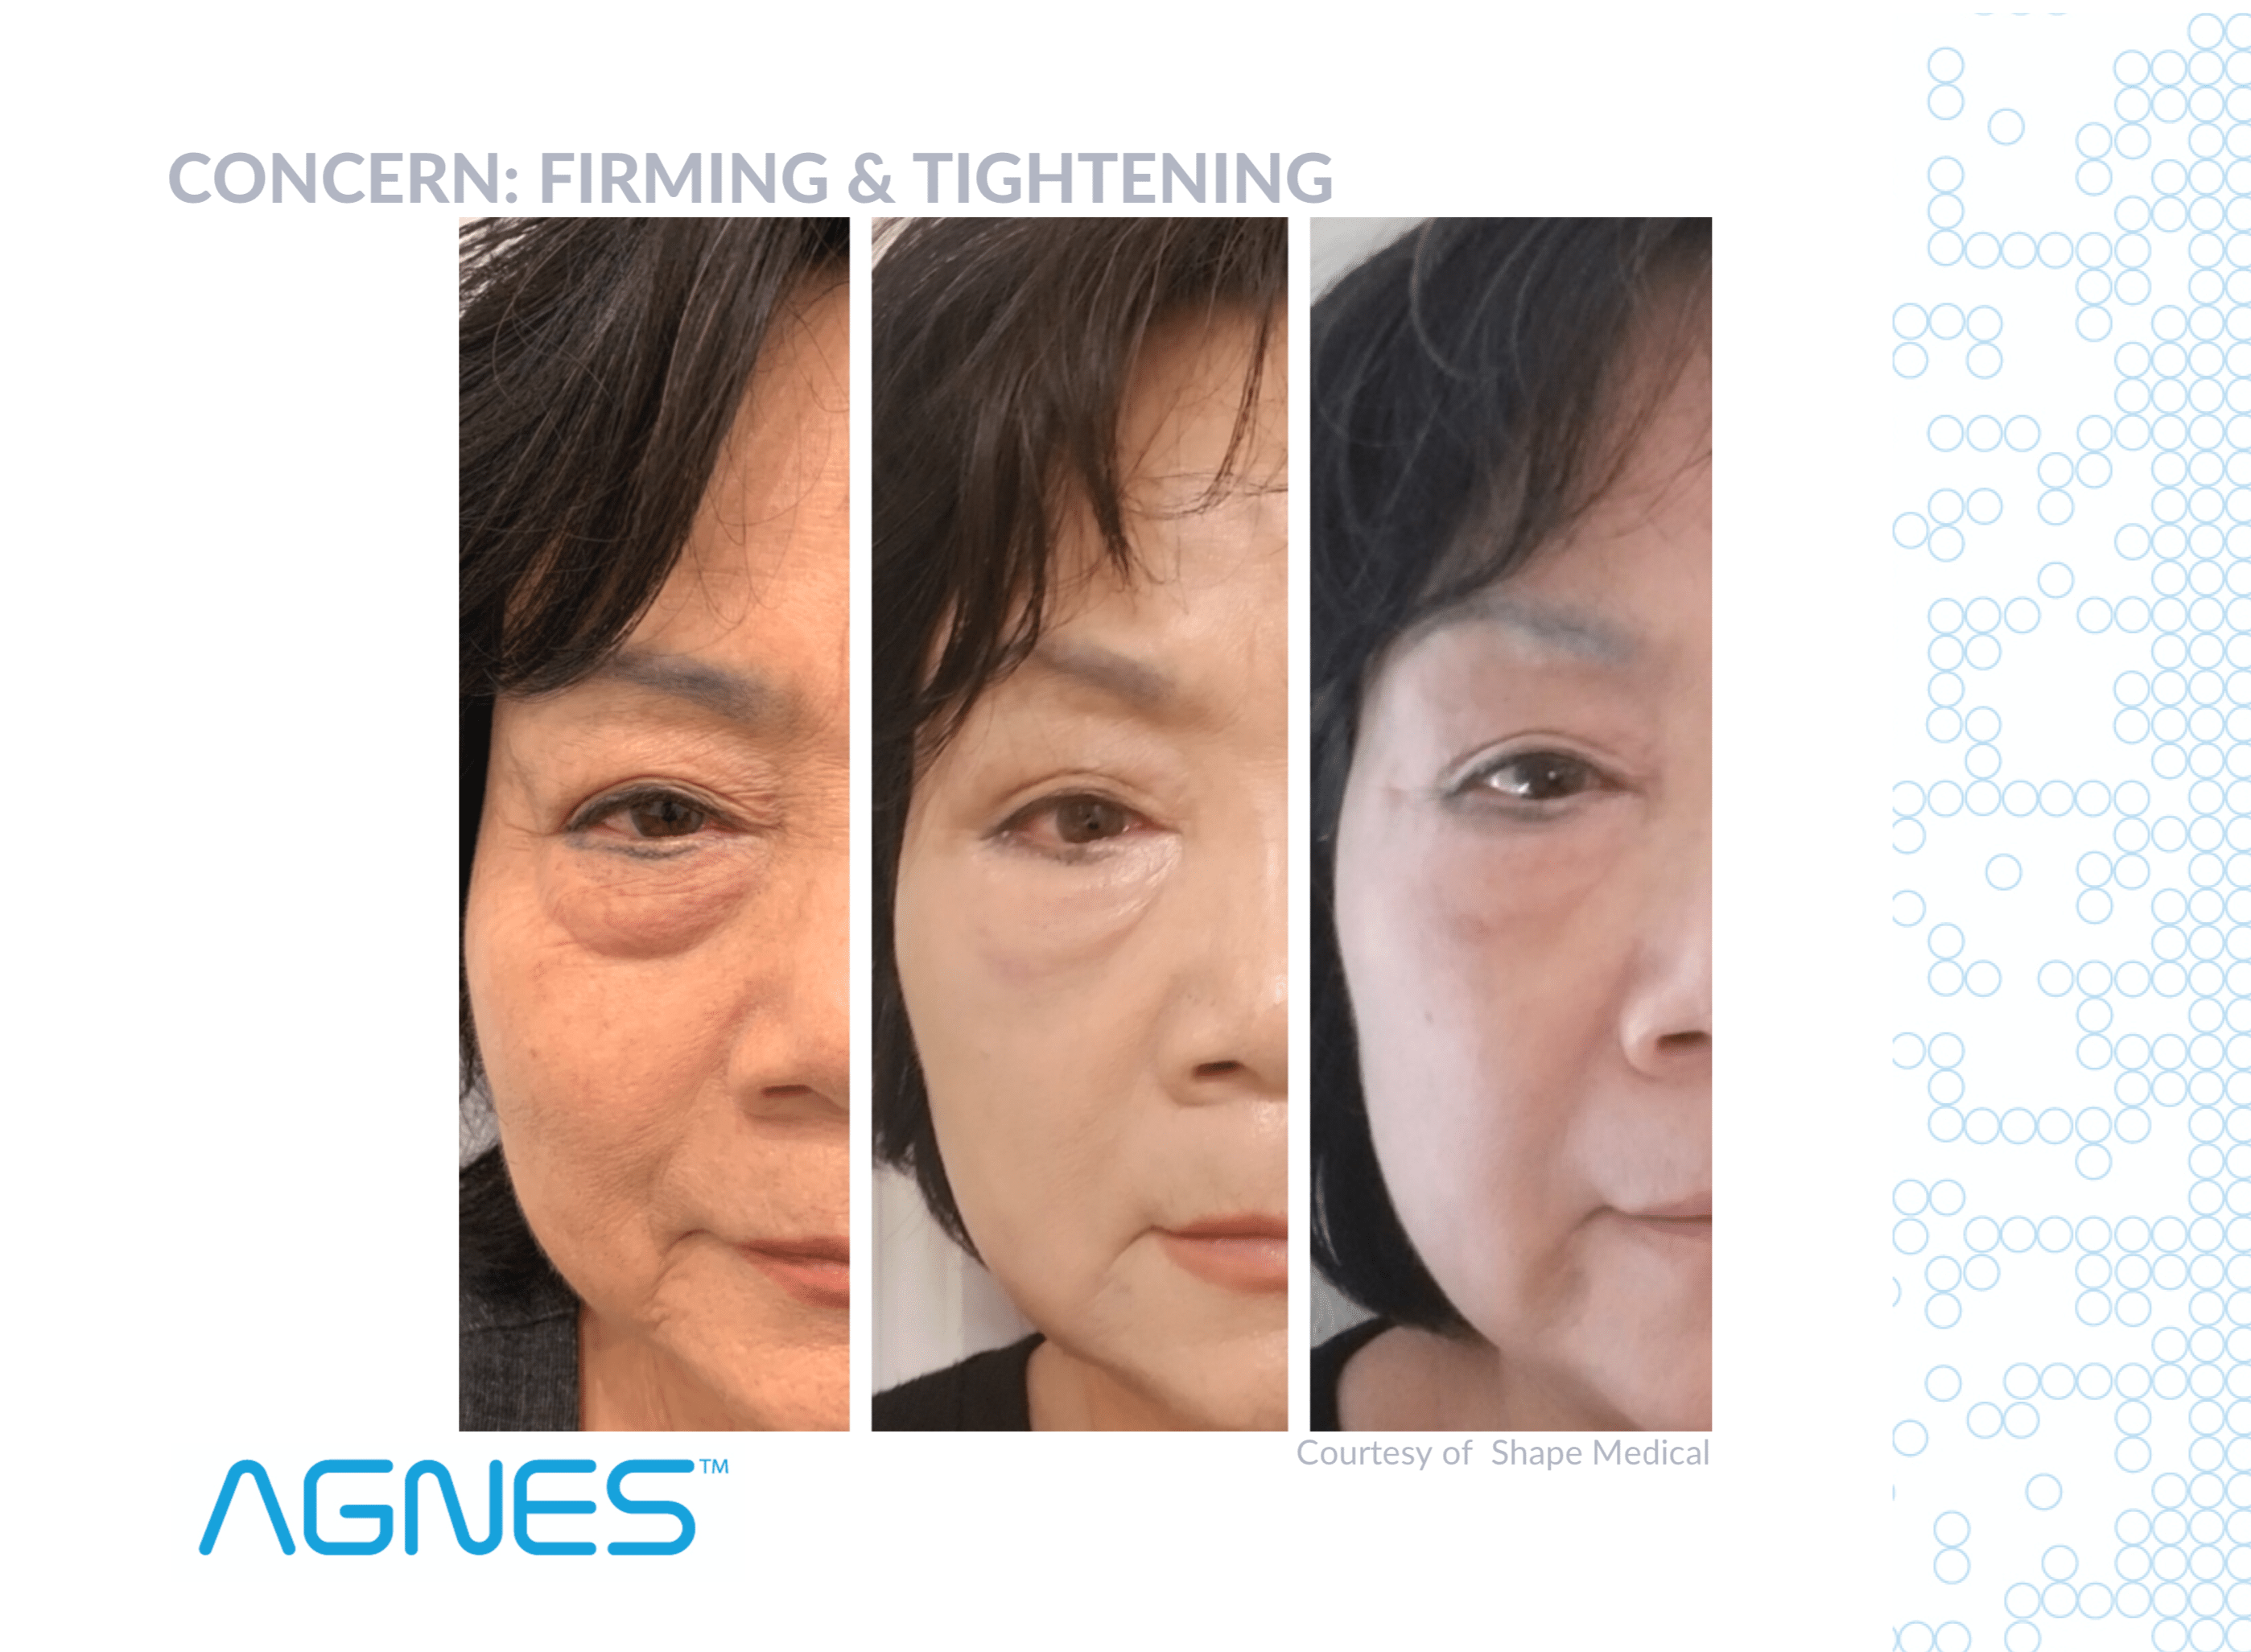 AGNES Before And After - Firming And Tightening Of Eye Bags